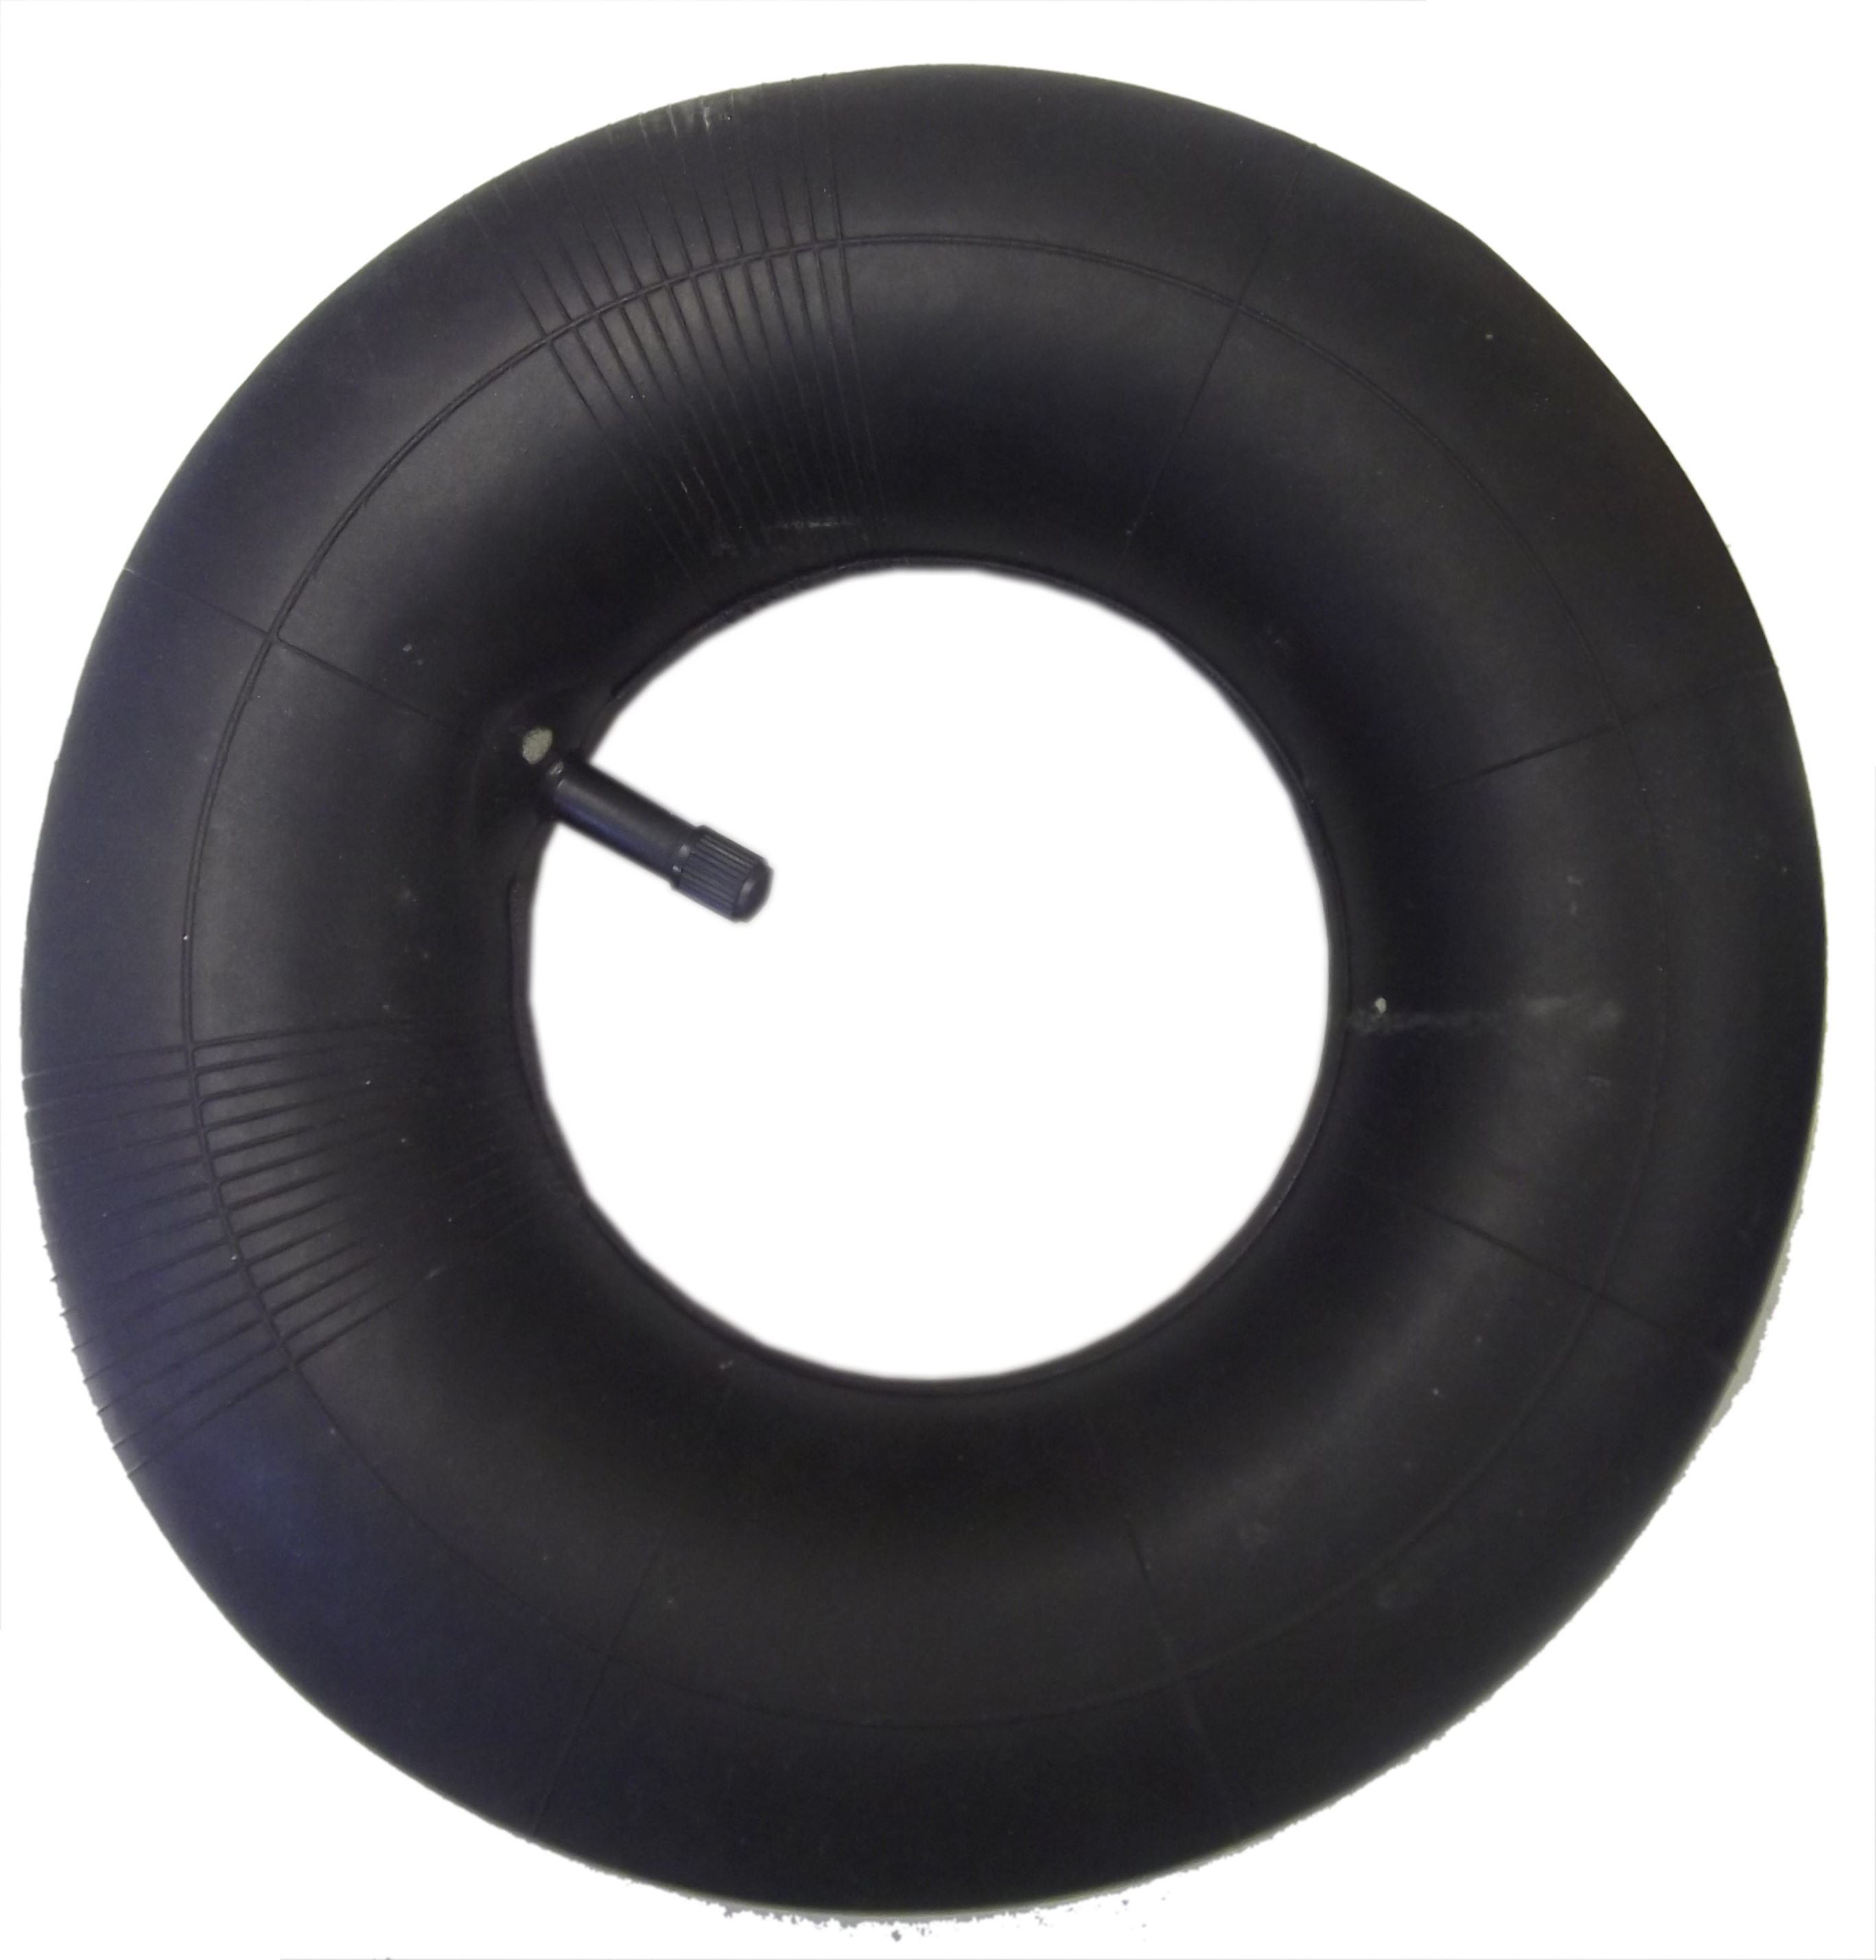 Free Inner Tube Cliparts, Download Free Clip Art, Free Clip.